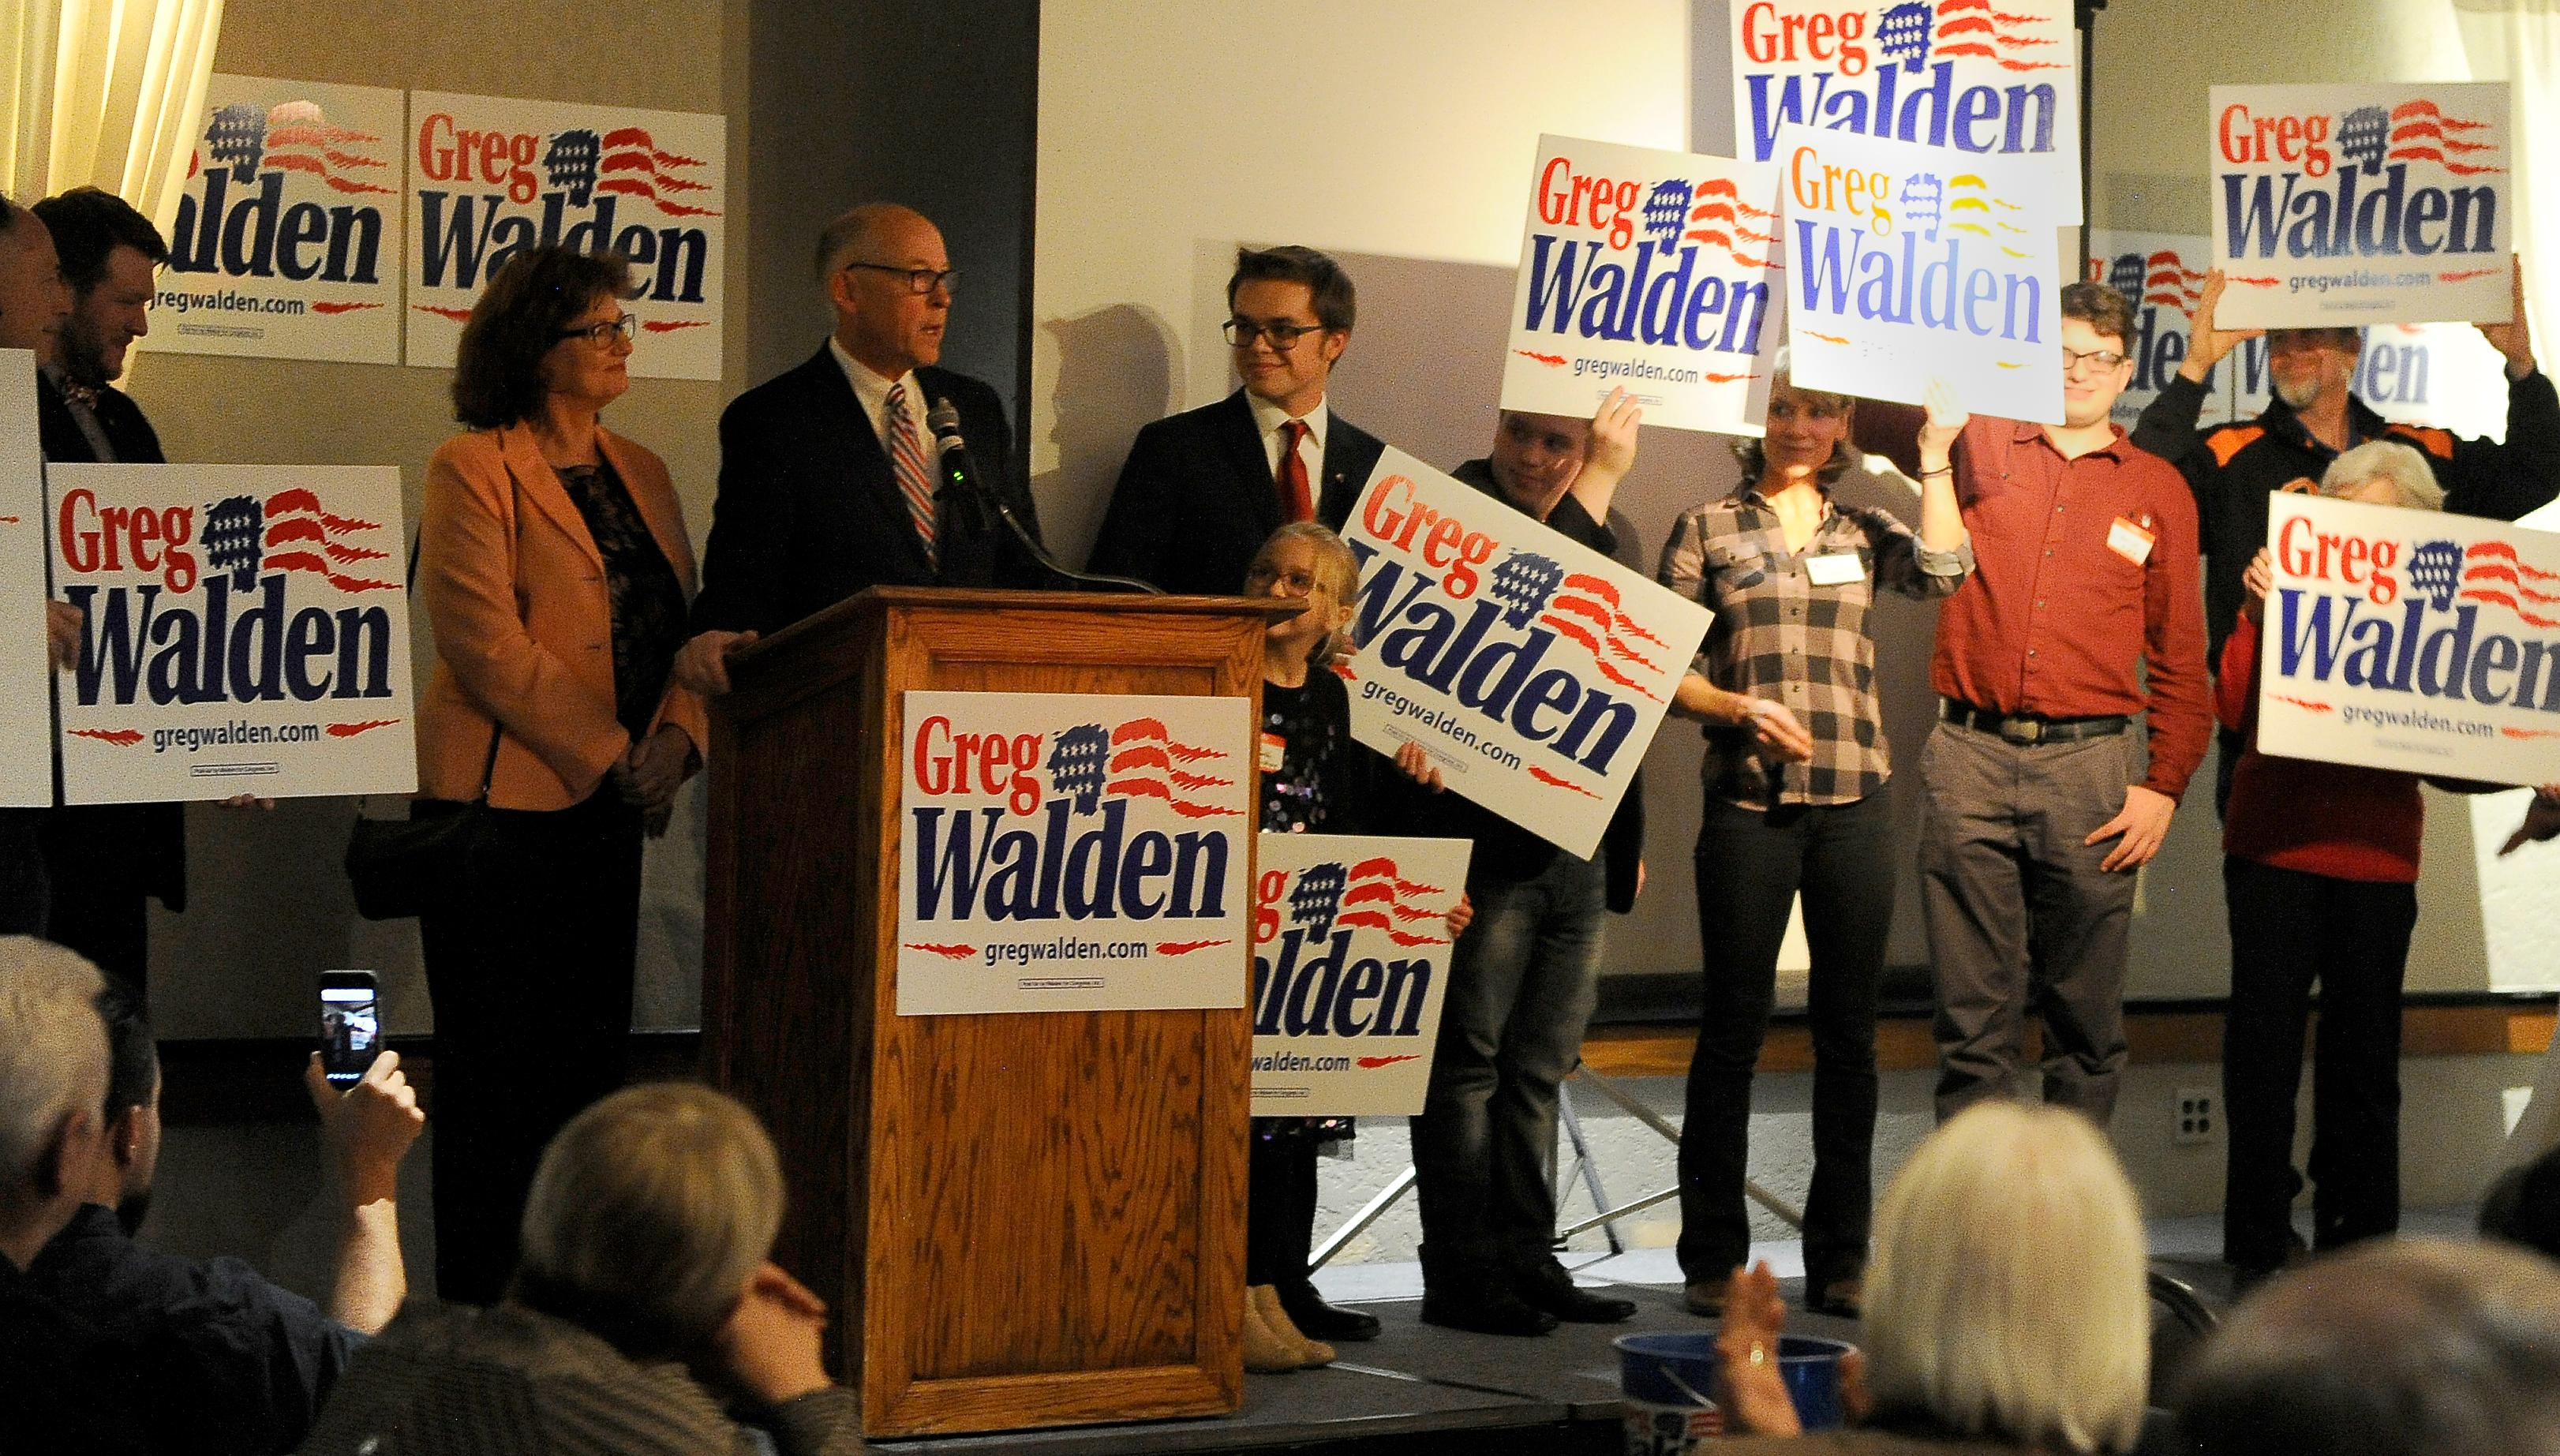 Andy Atkinson / Mail Tribune{ } Congressman Greg Walden gives a speech at the Republican party held at the Rogue Valley Country Club Tuesday evening.